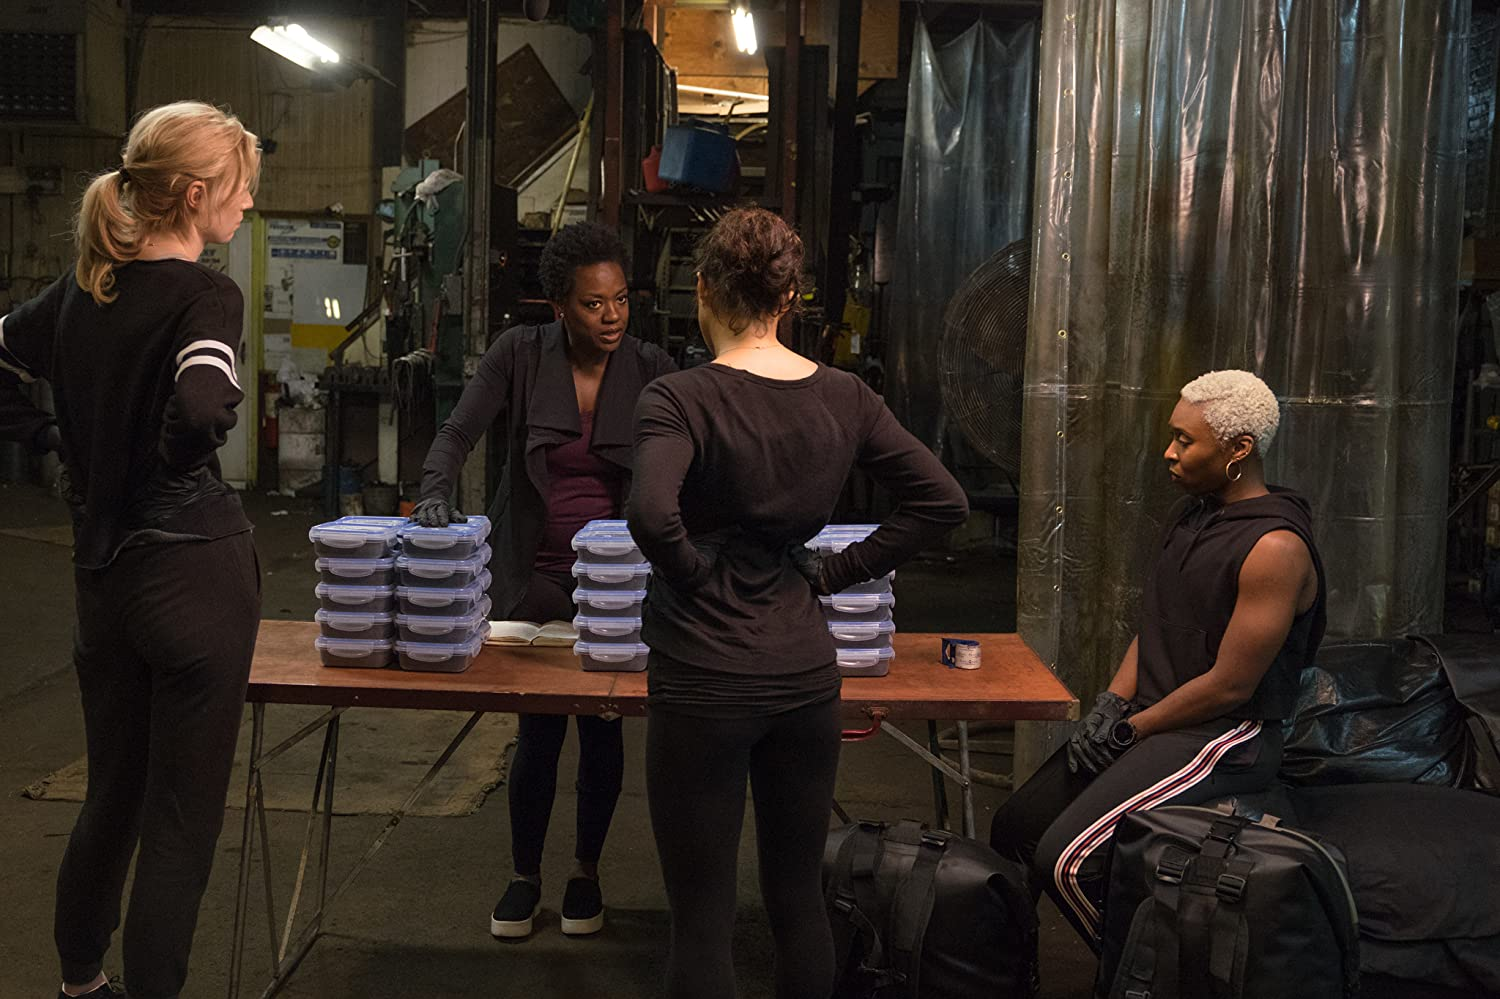 Widows movie review as viúvas crítica